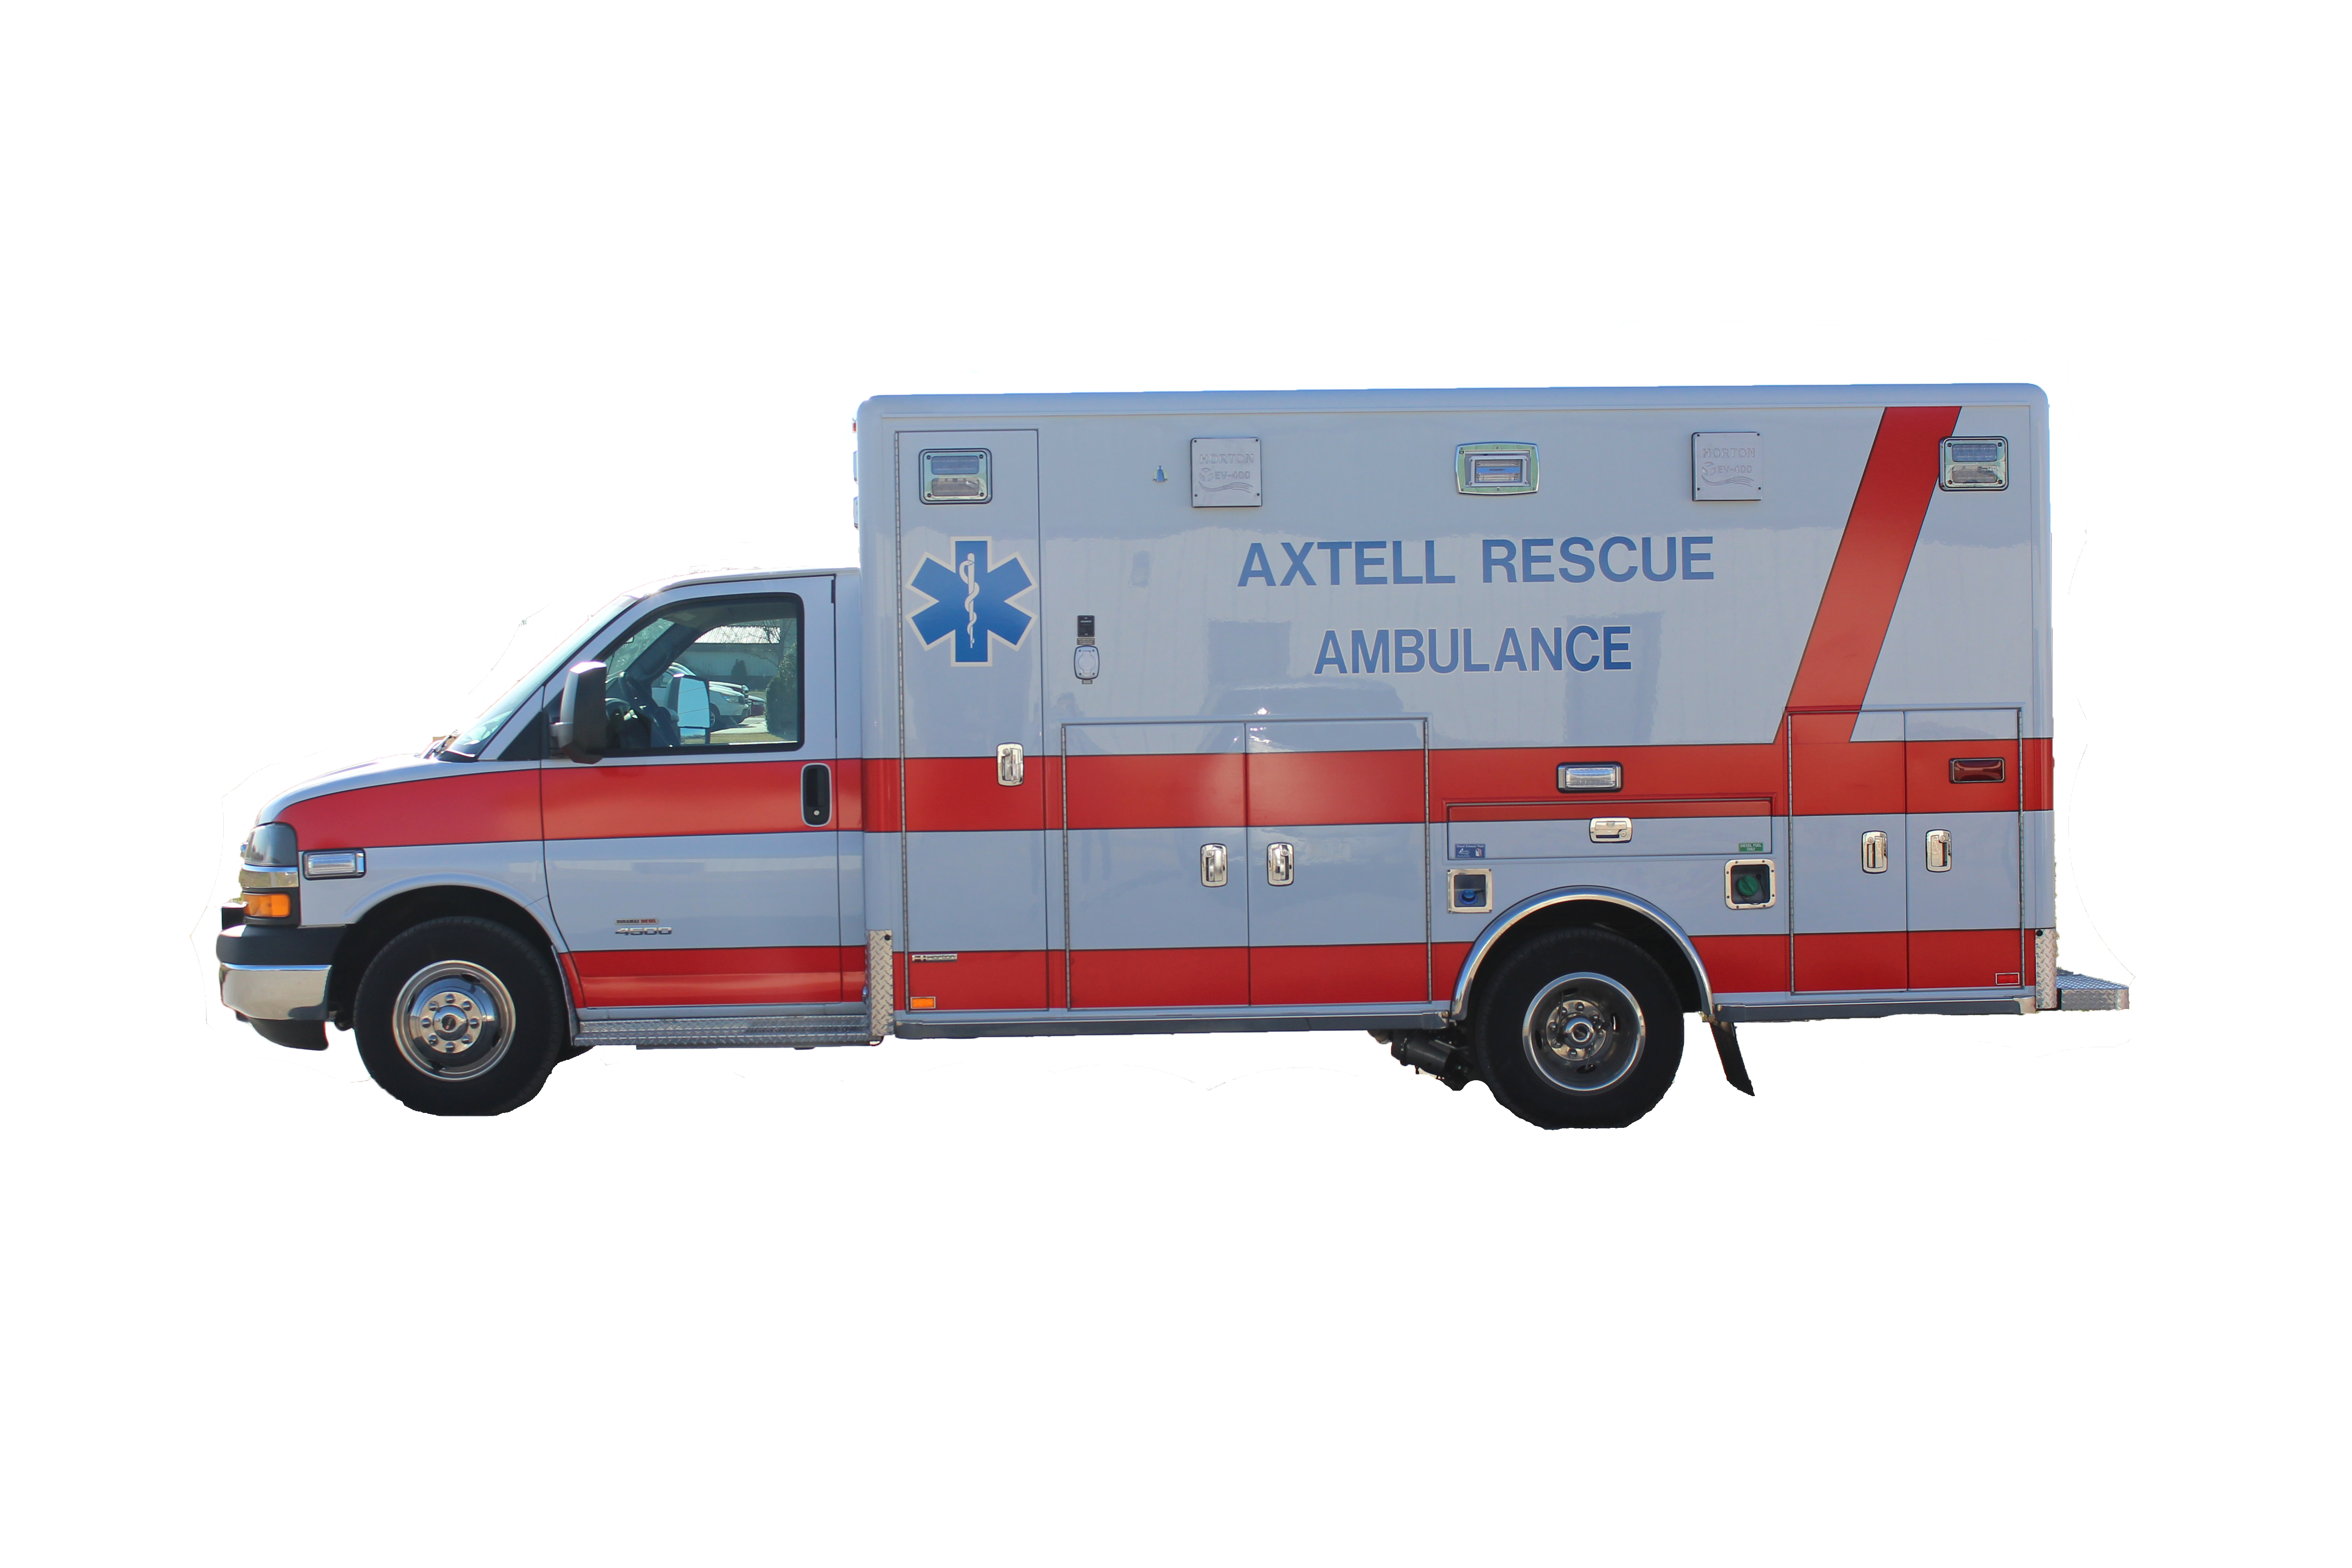 axtell-ambulance-clipped.png